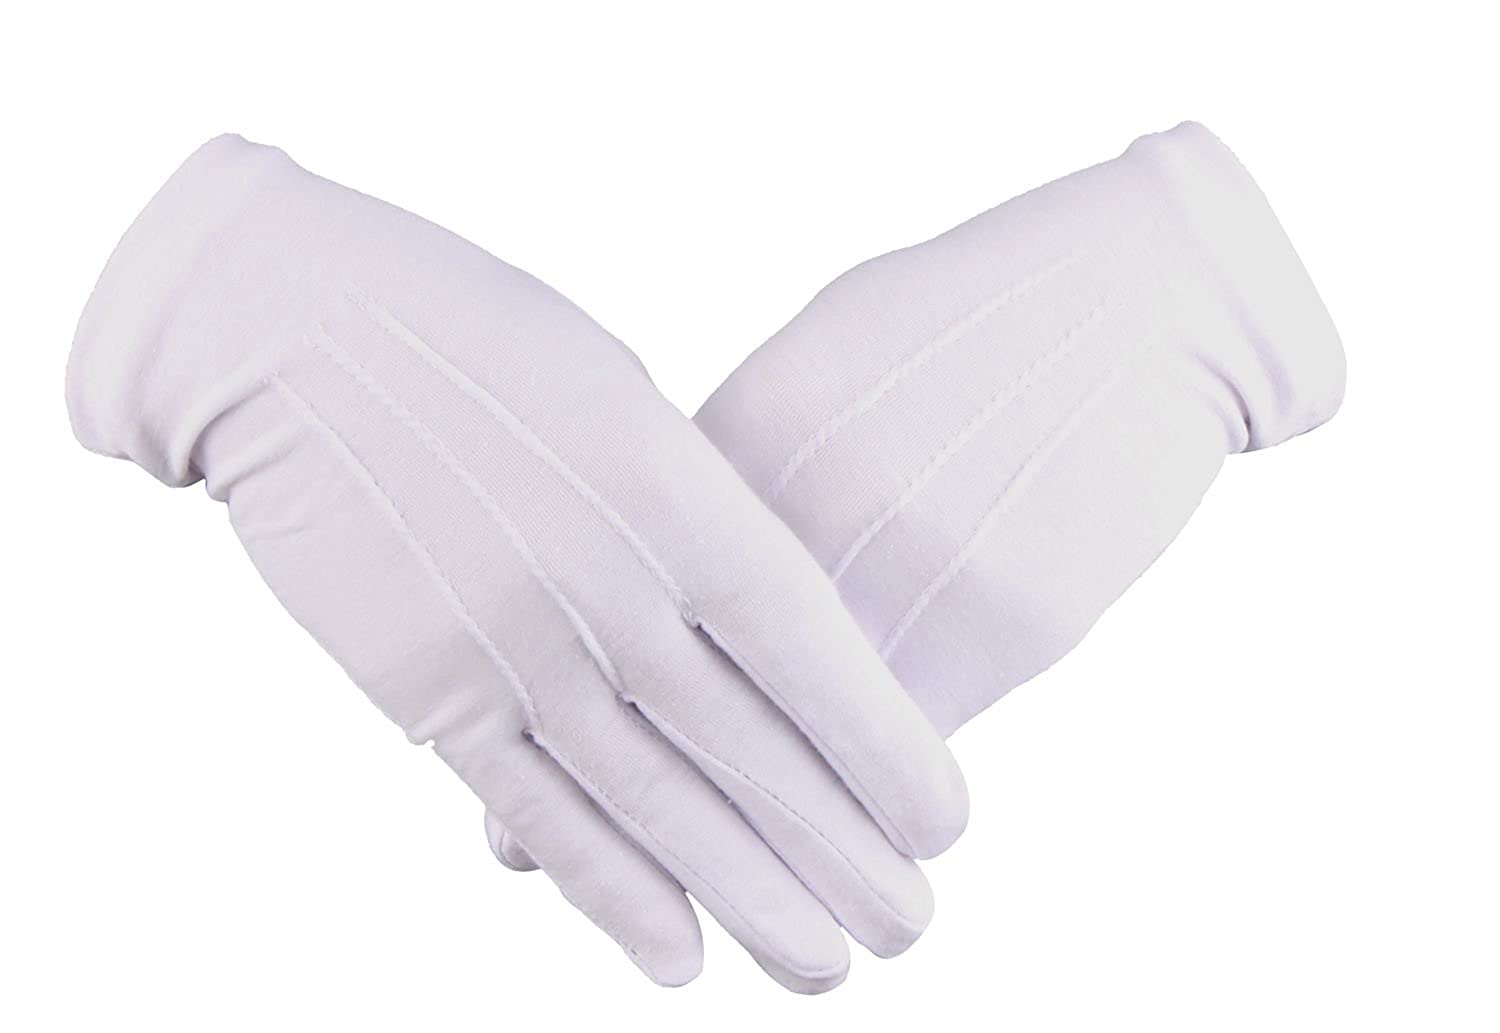 WDSKY Men's Women's Cotton White Gloves for Parade Formal GLOVEWH02